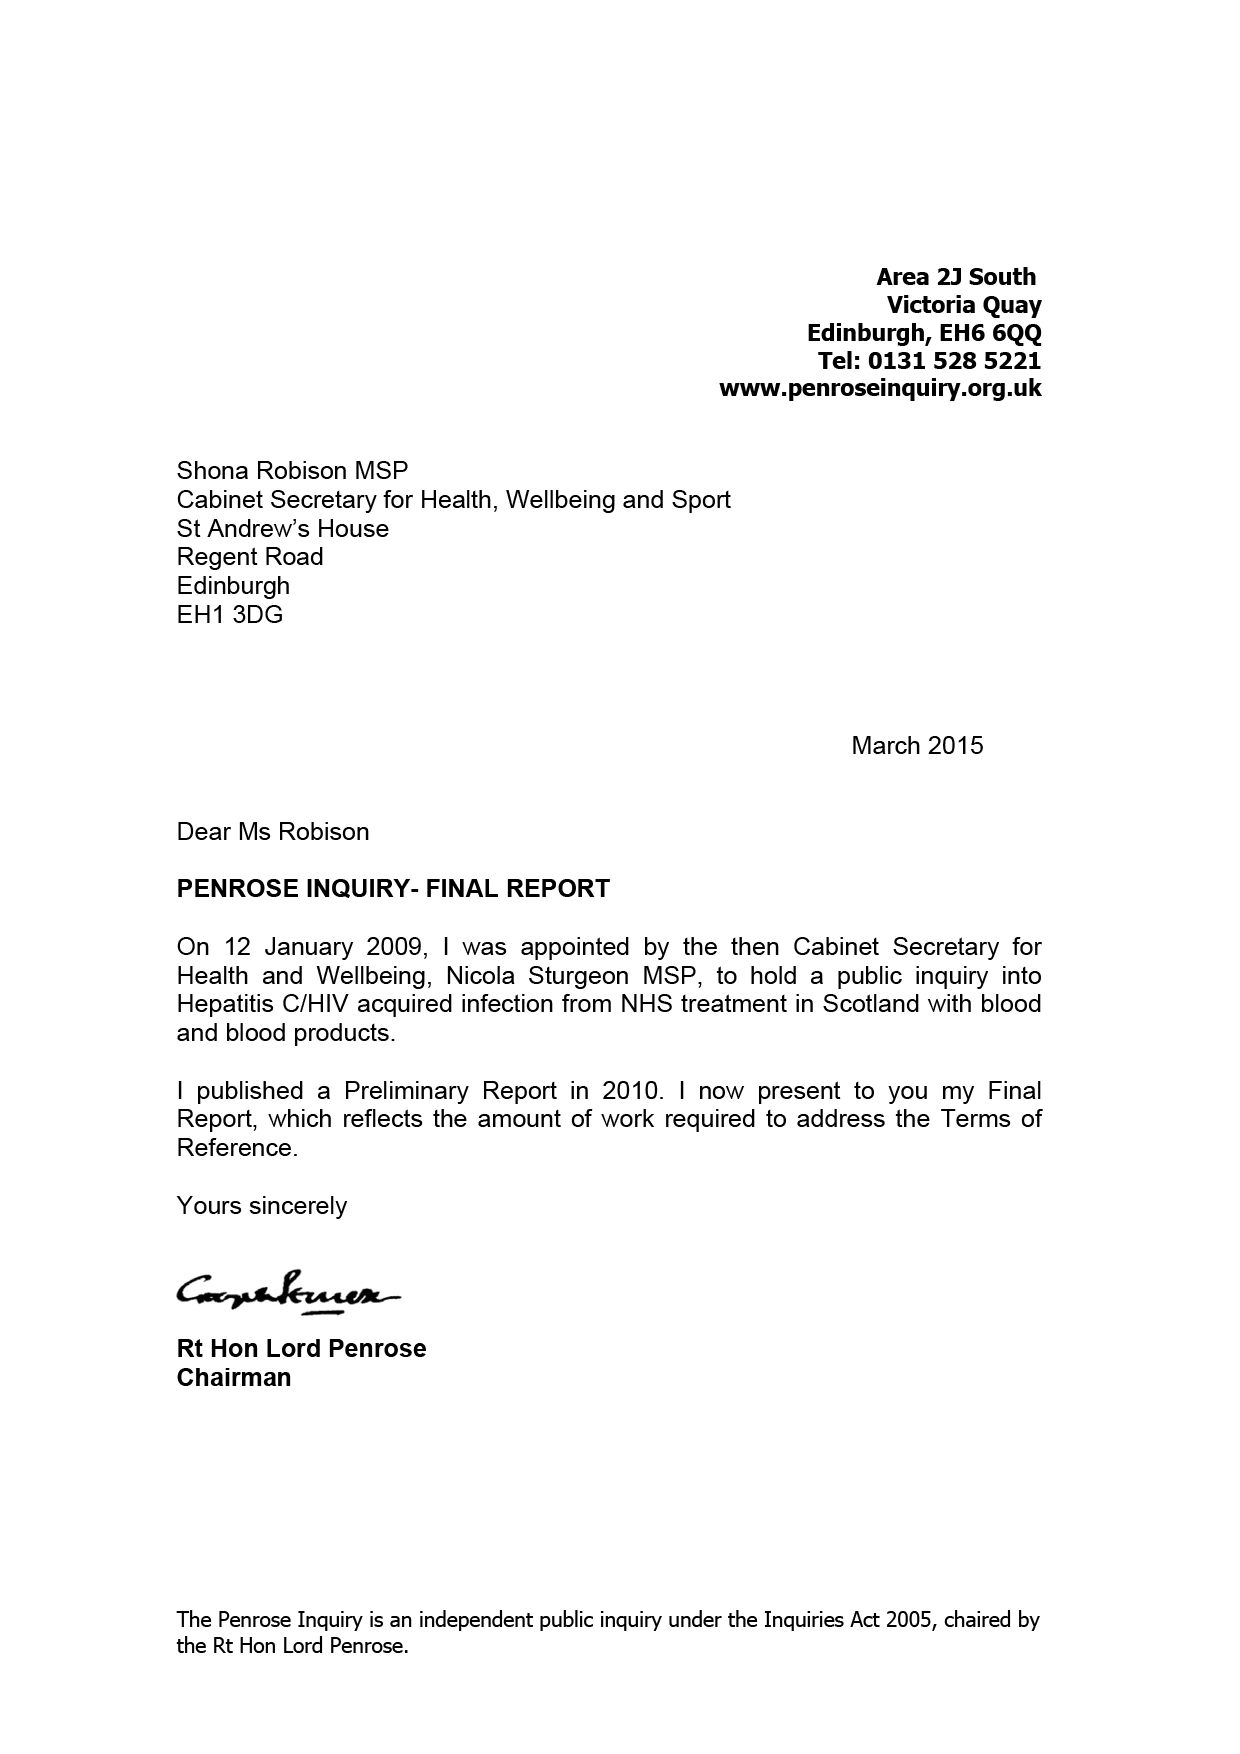 final report chairman s letter to the cabinet secretary